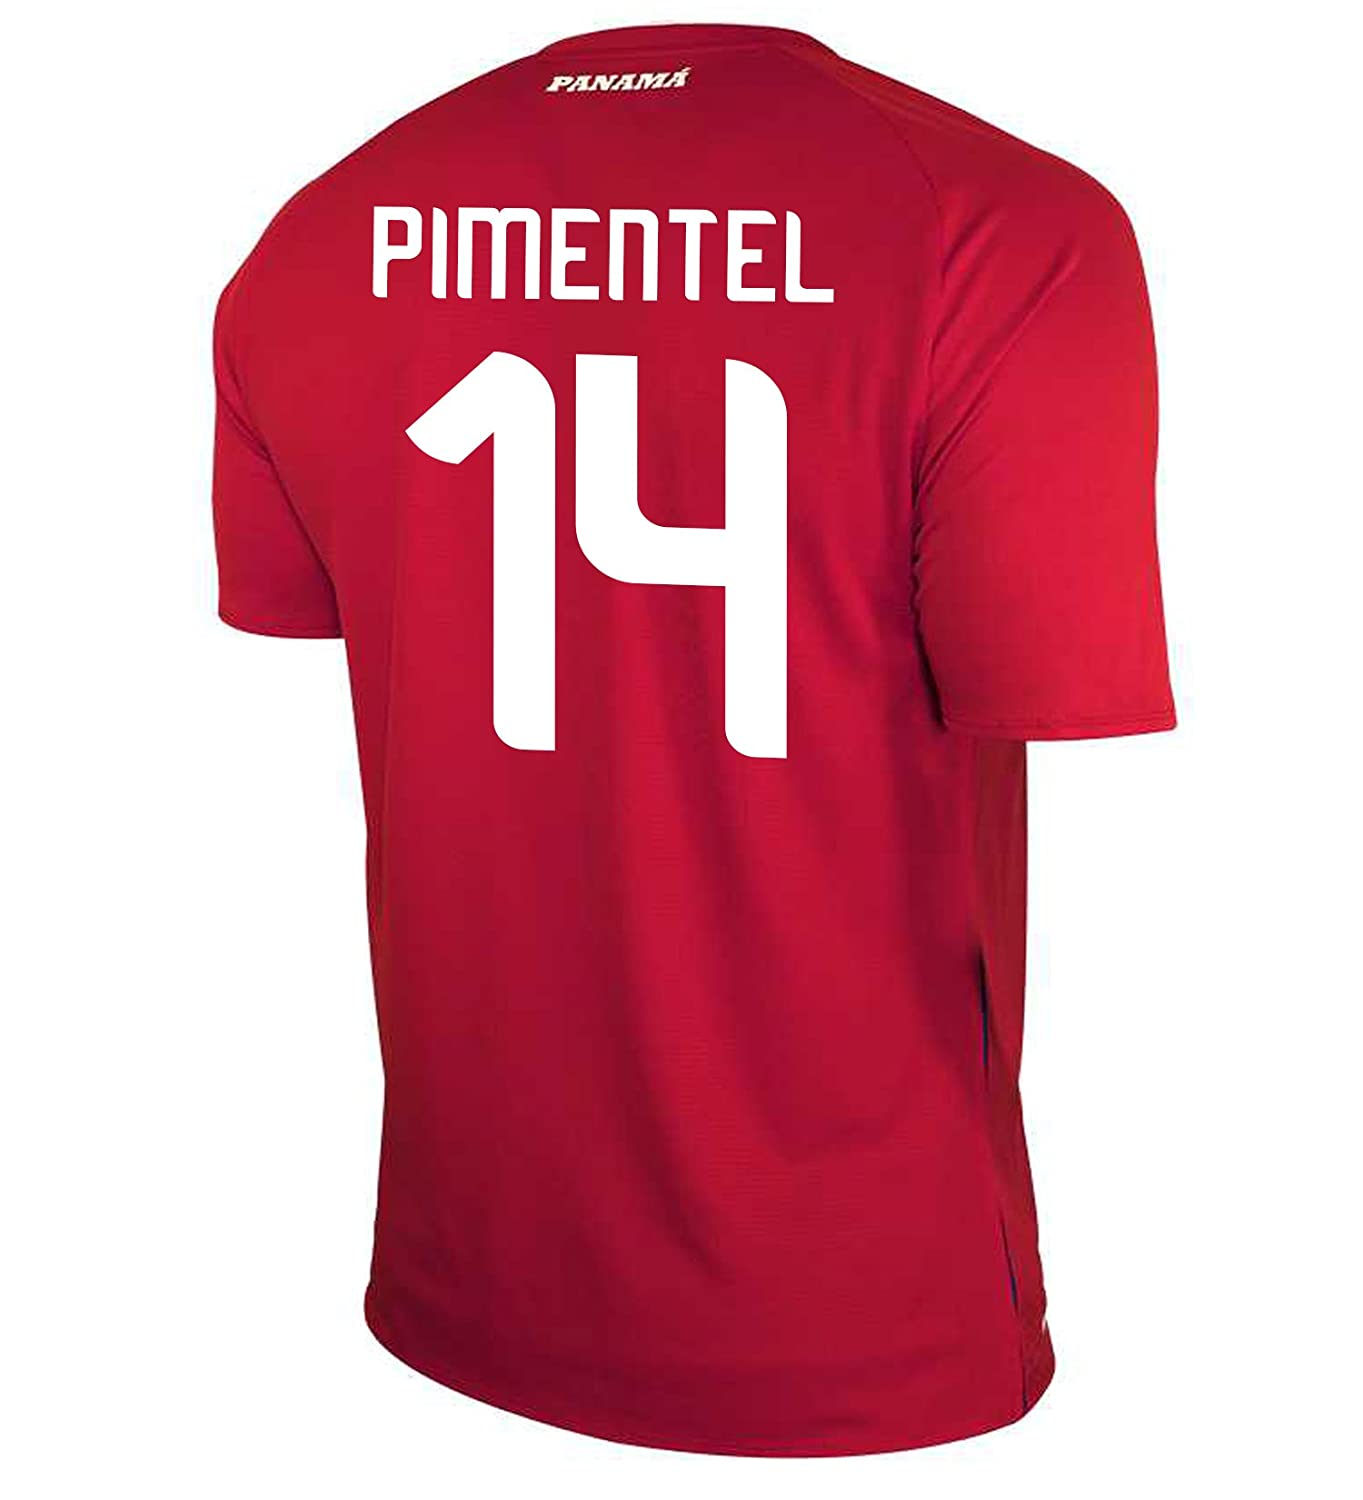 好きに New パナマ Balance Men's PIMENTEL #14 World Panama Home Soccer Jersey Medium FIFA World Cup Russia 2018/サッカーユニフォーム パナマ ホーム用 ピメンタル#14 B07D3C9Q92 US Medium, 渥美郡:90b6430a --- goumitra.com